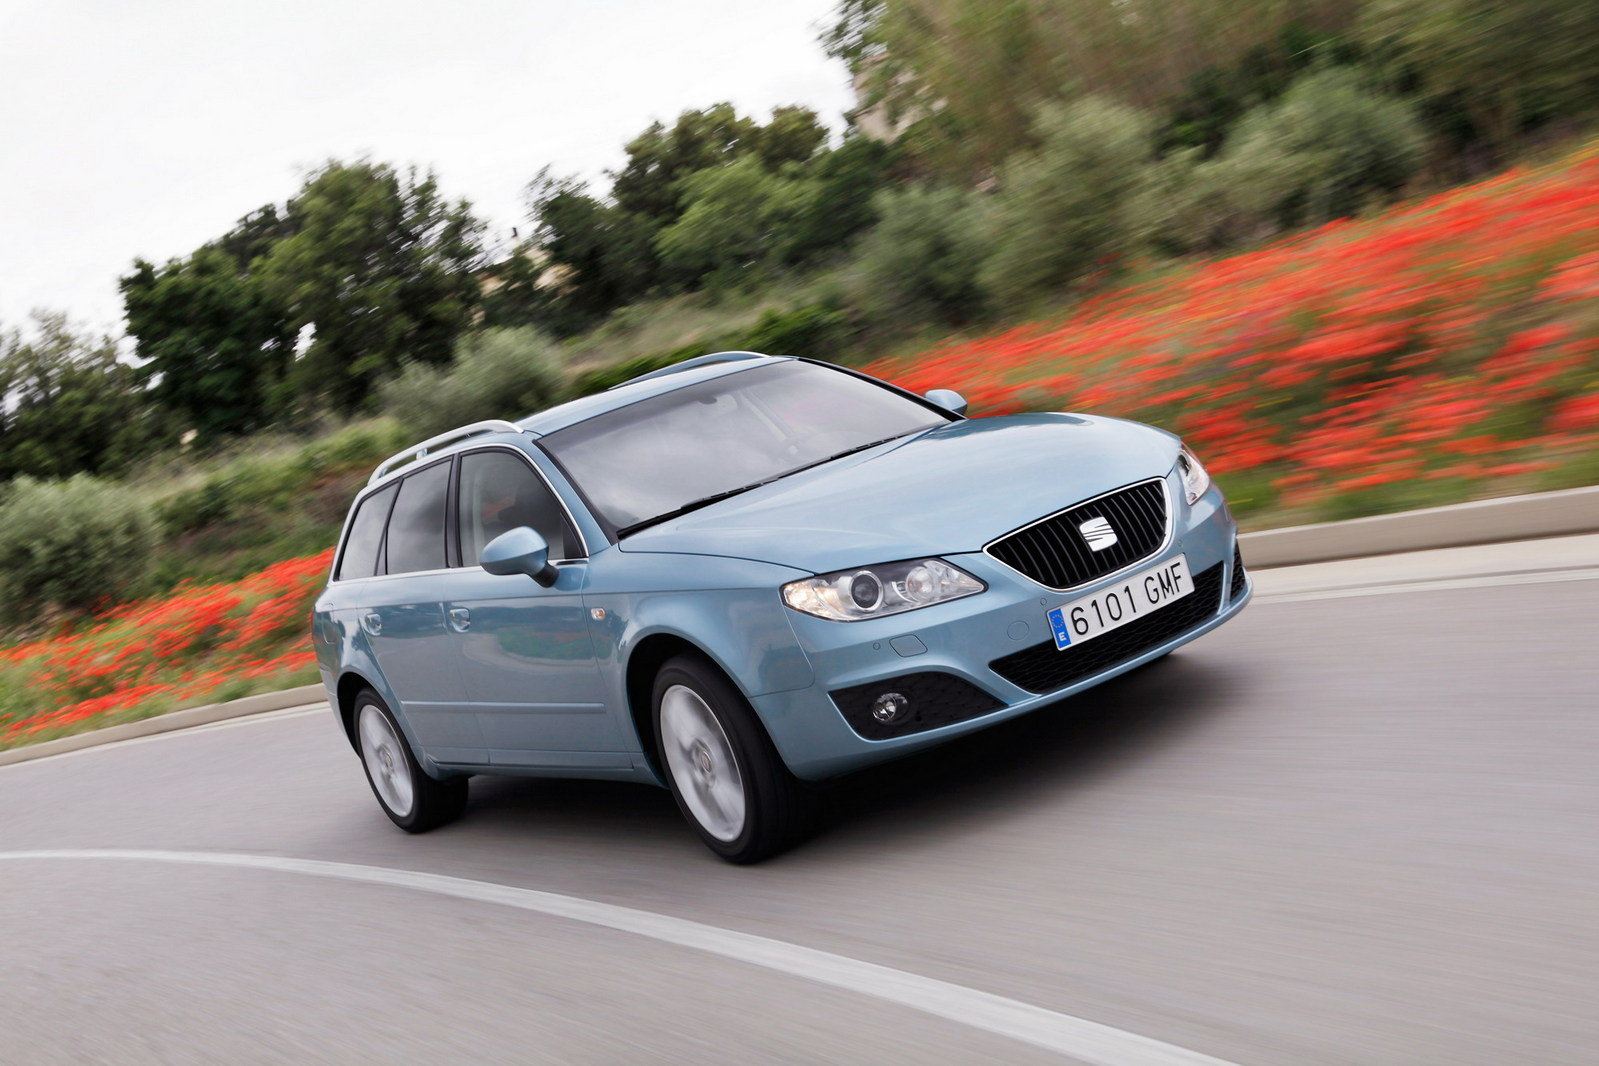 2010 seat exeo sport tourer picture 304029 car review top speed. Black Bedroom Furniture Sets. Home Design Ideas